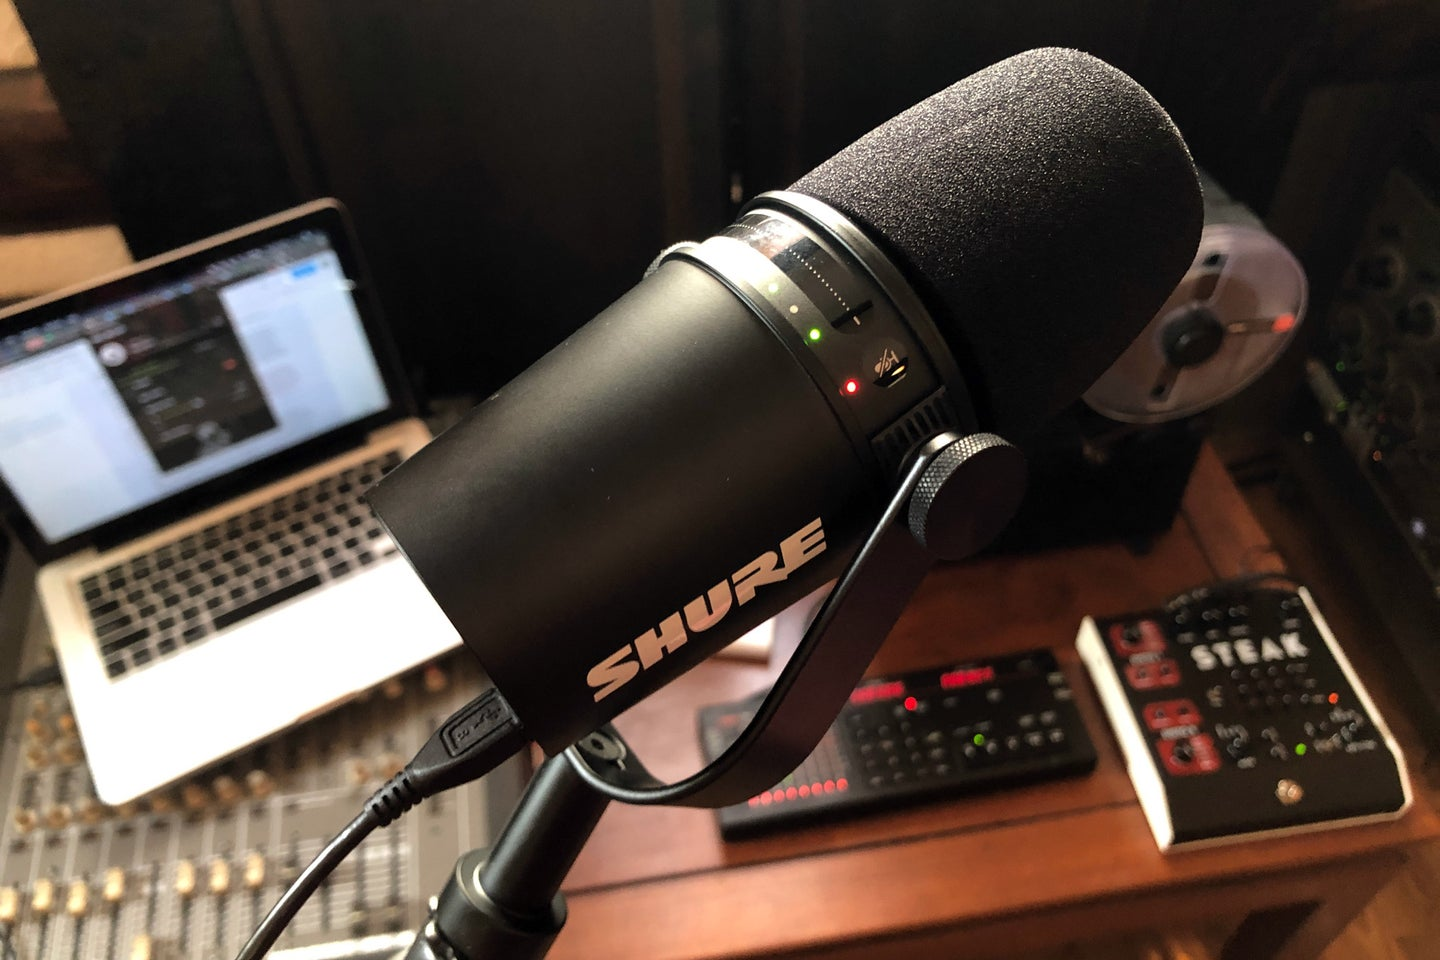 Shure MV7 podcasting microphone connected via USB